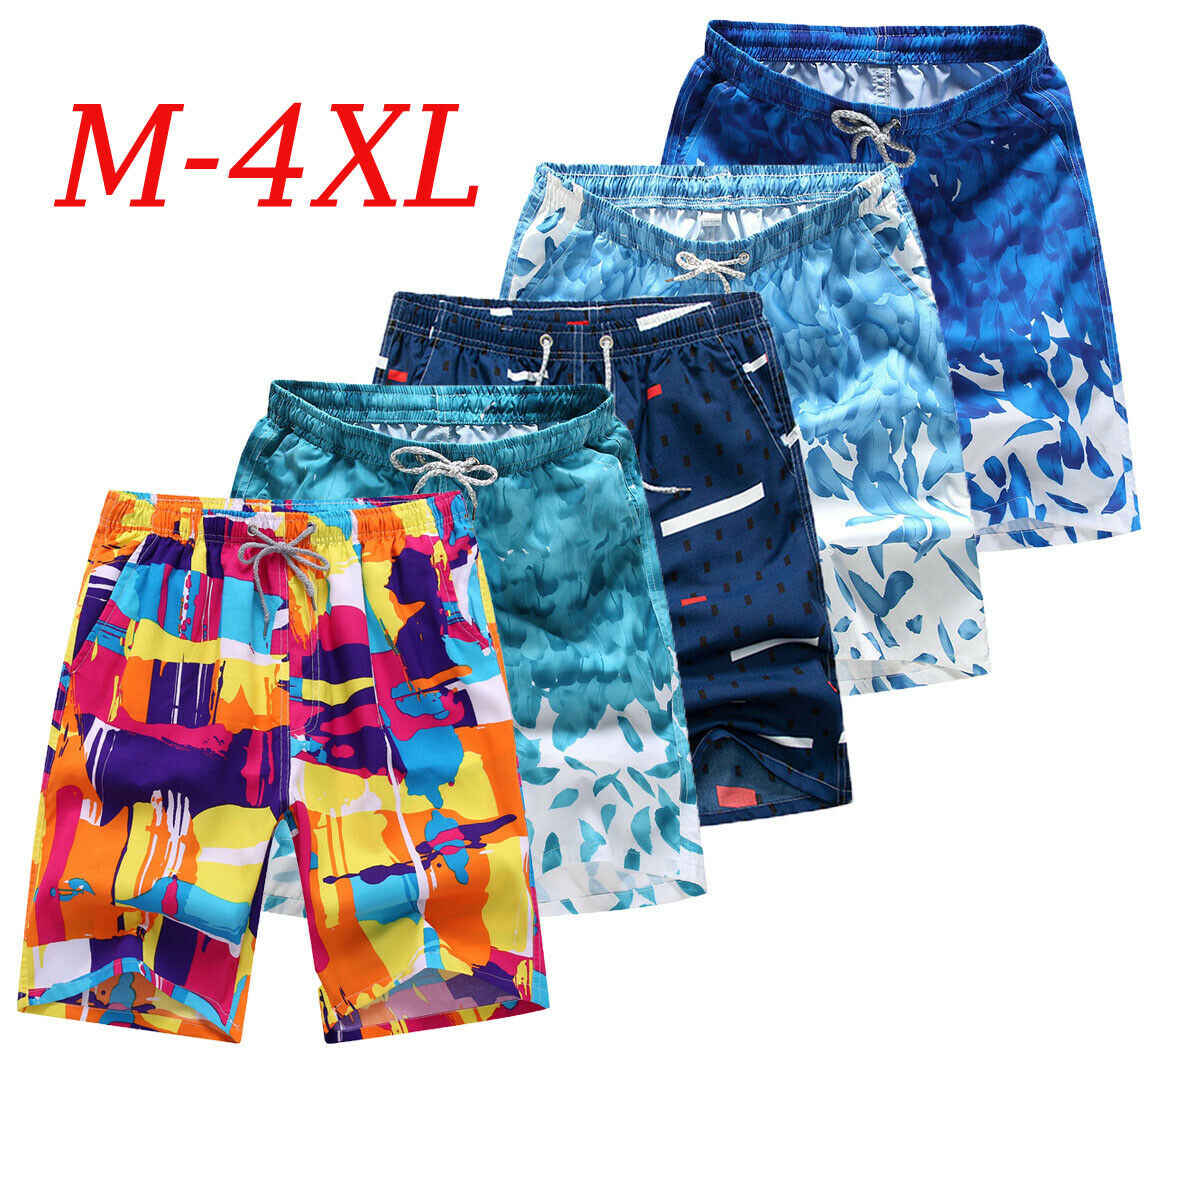 New Men's Swim Trunks Beach Shorts Surf Board Print Shorts Summer Sports Pants Breathable